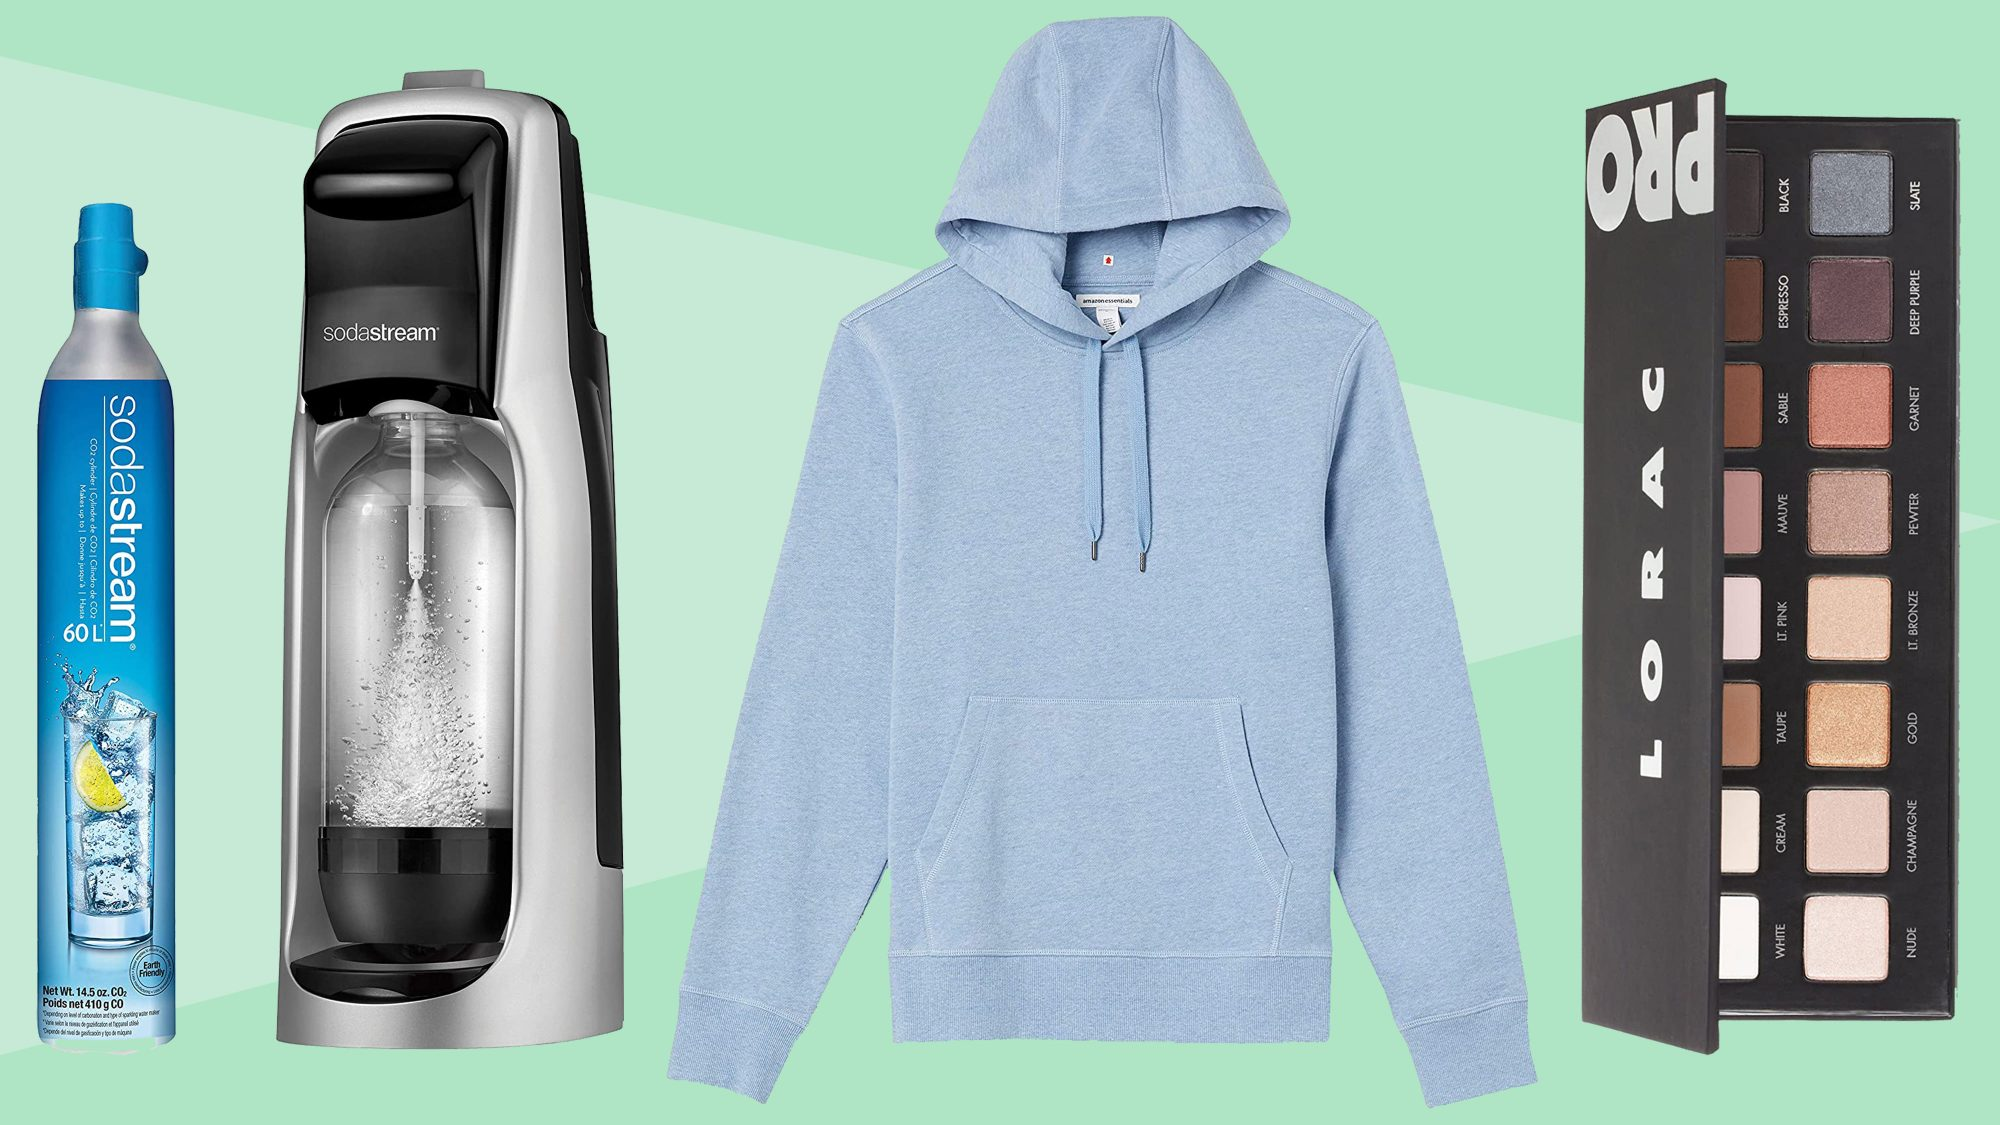 eyeshadow amazon hooded fleece sodastream: editor picks Amazon Prime Day